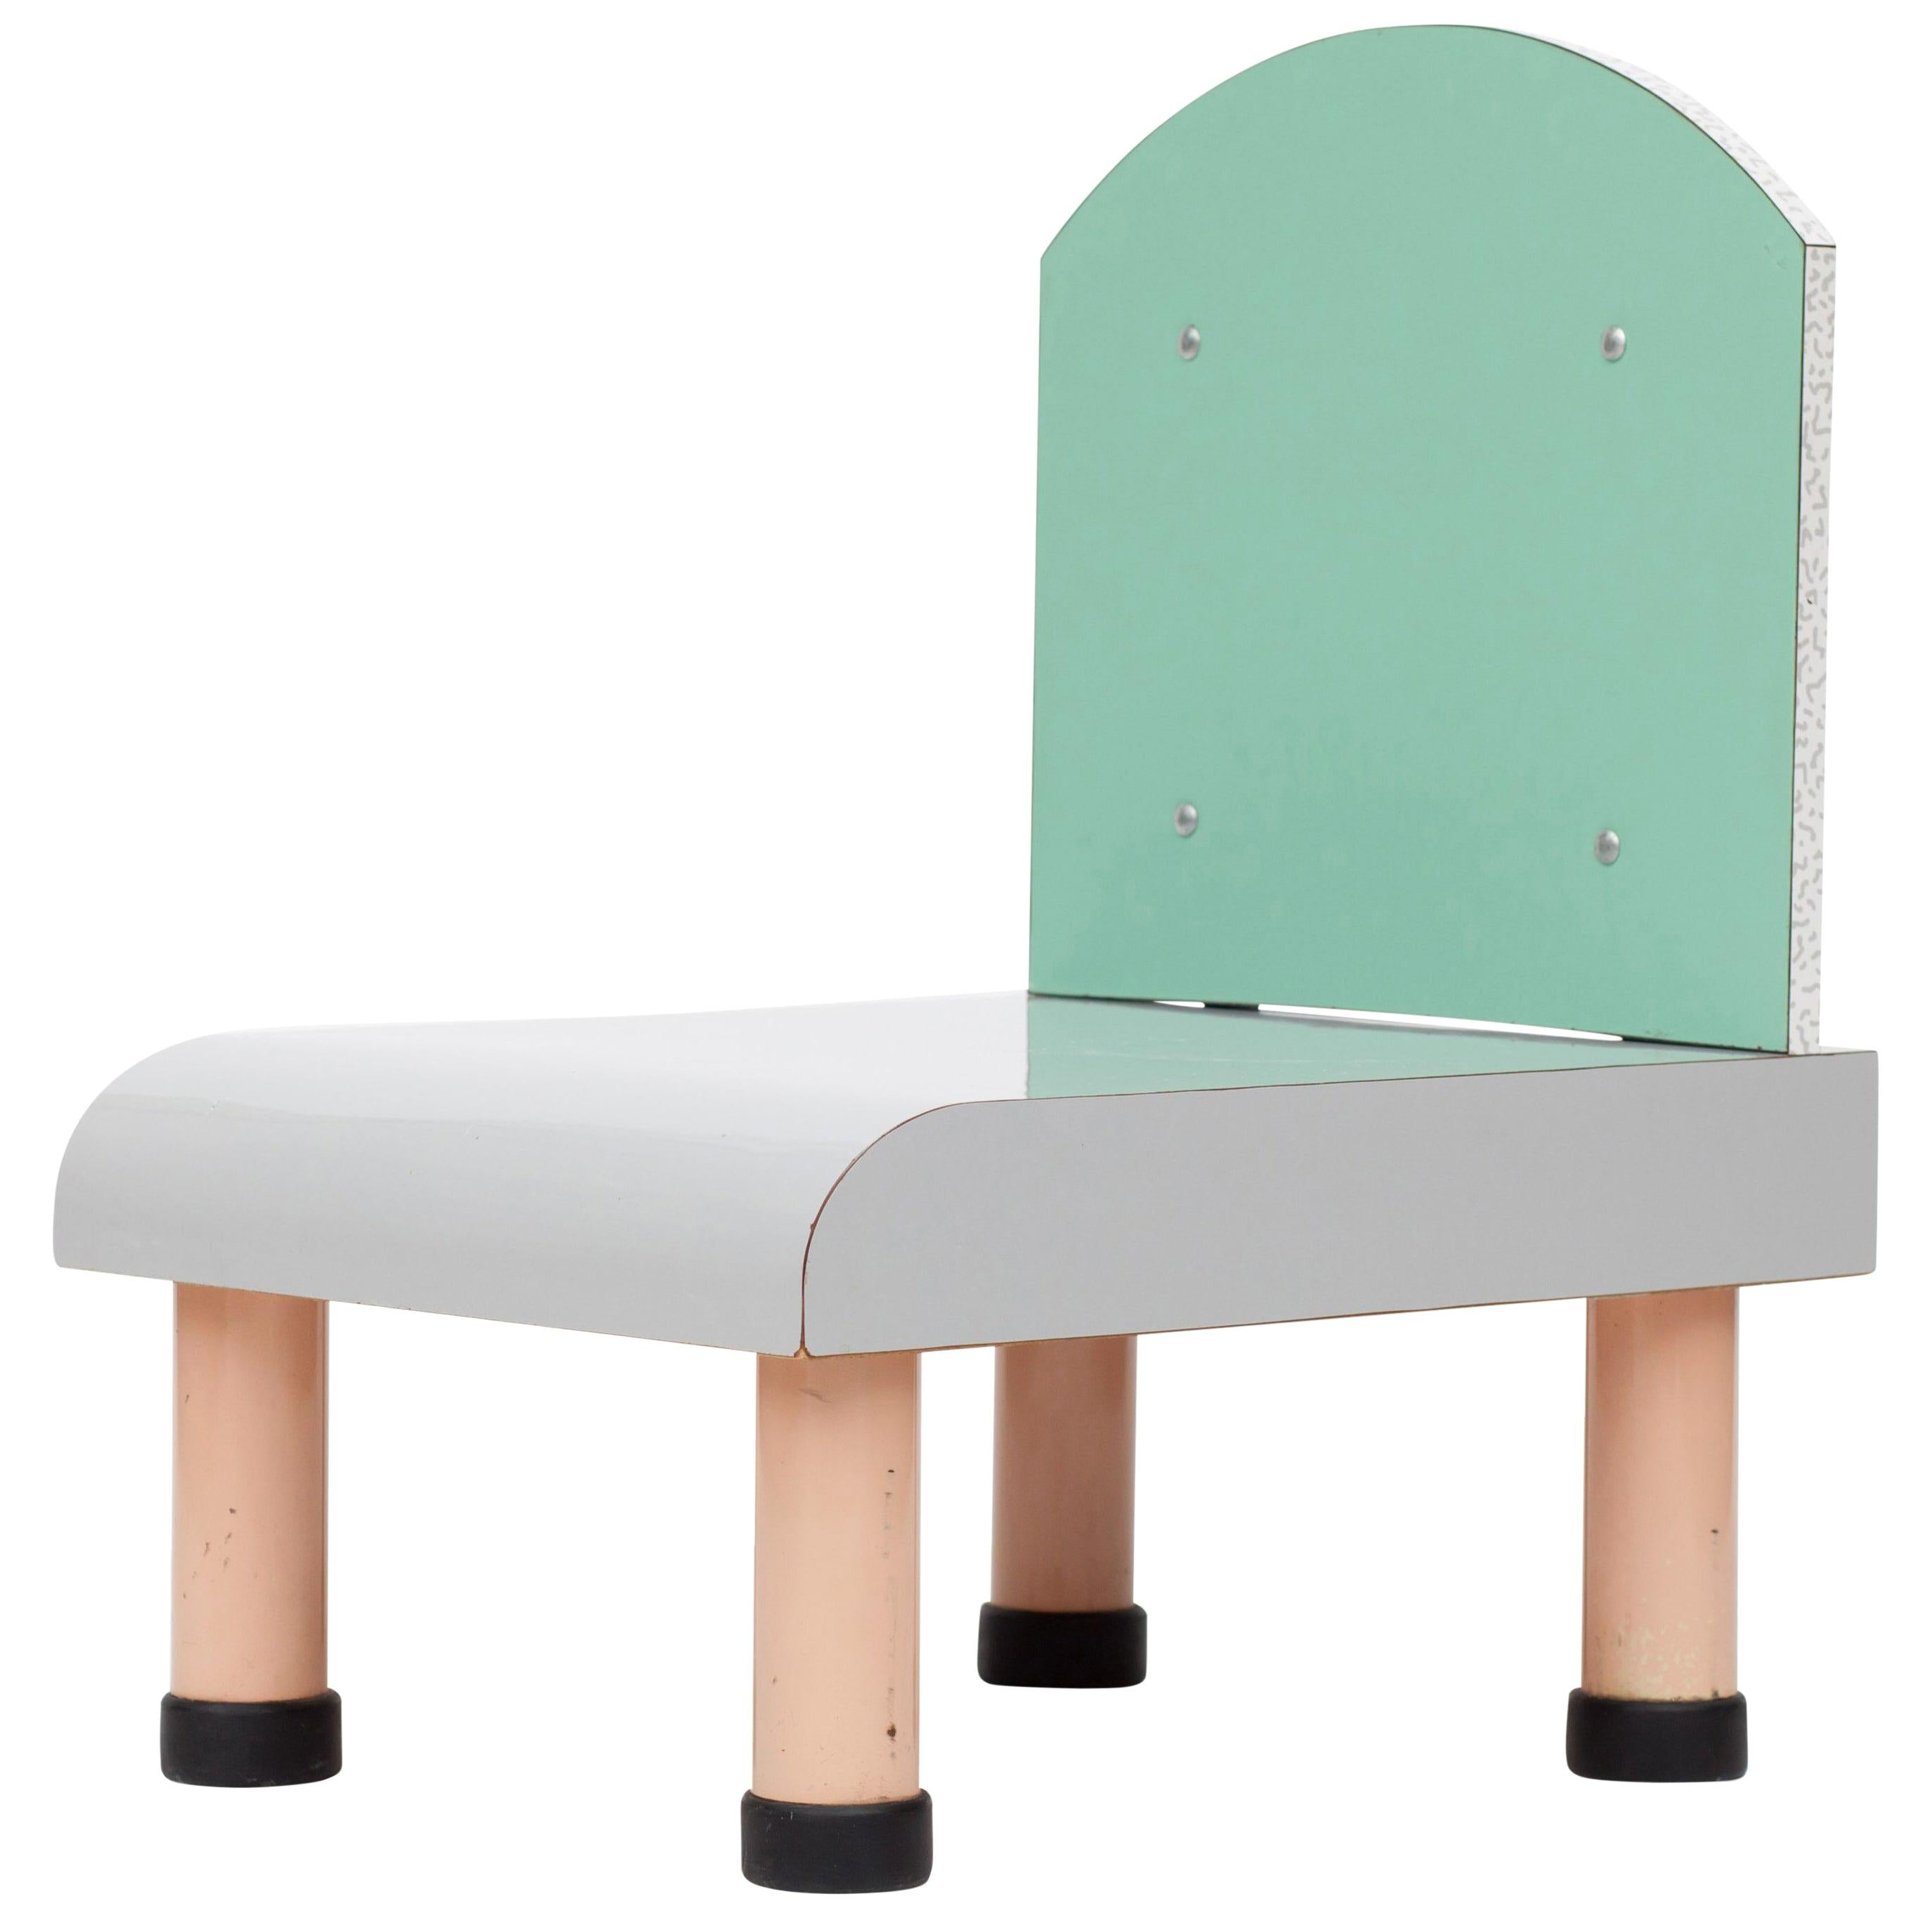 Sottsass Style Memphis Chair, Italy, 1980s